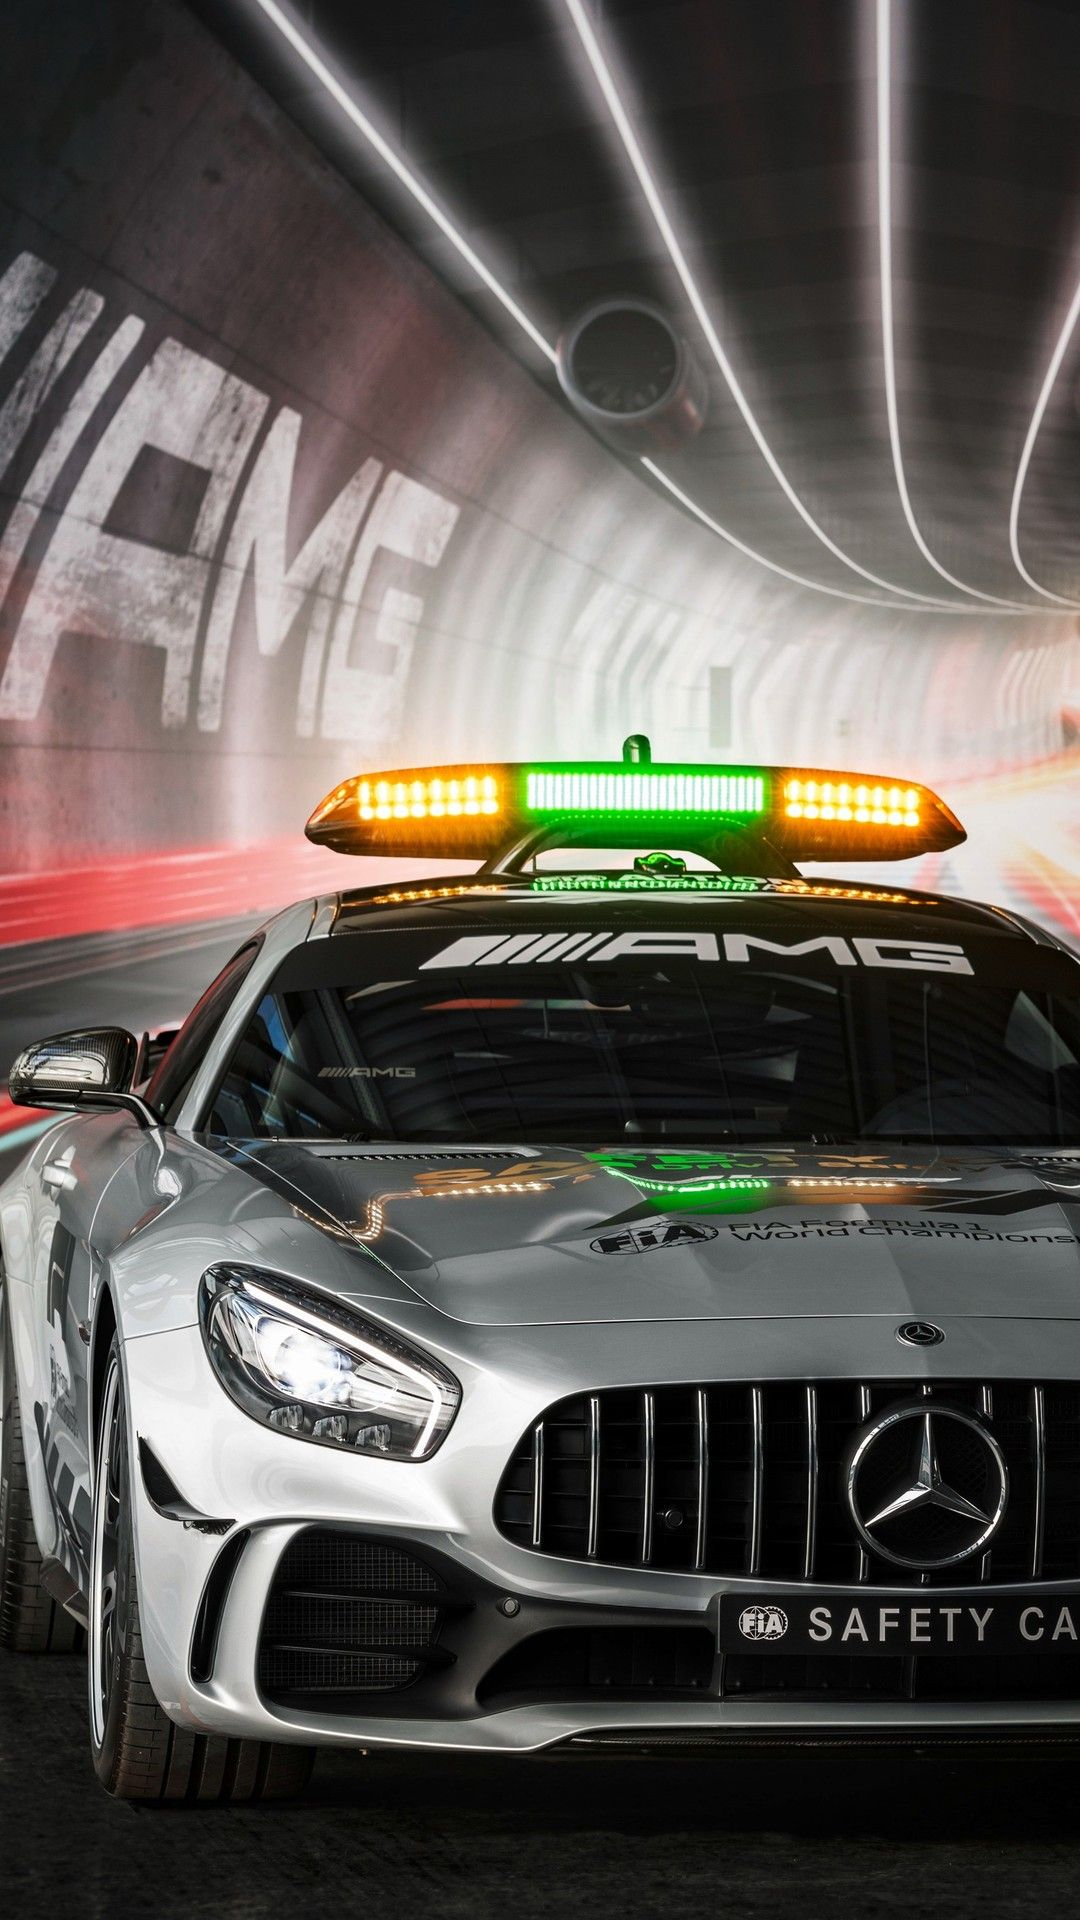 Cars Mercedes Amg Safety Car F1 Wallpapers Hd 4k Background For